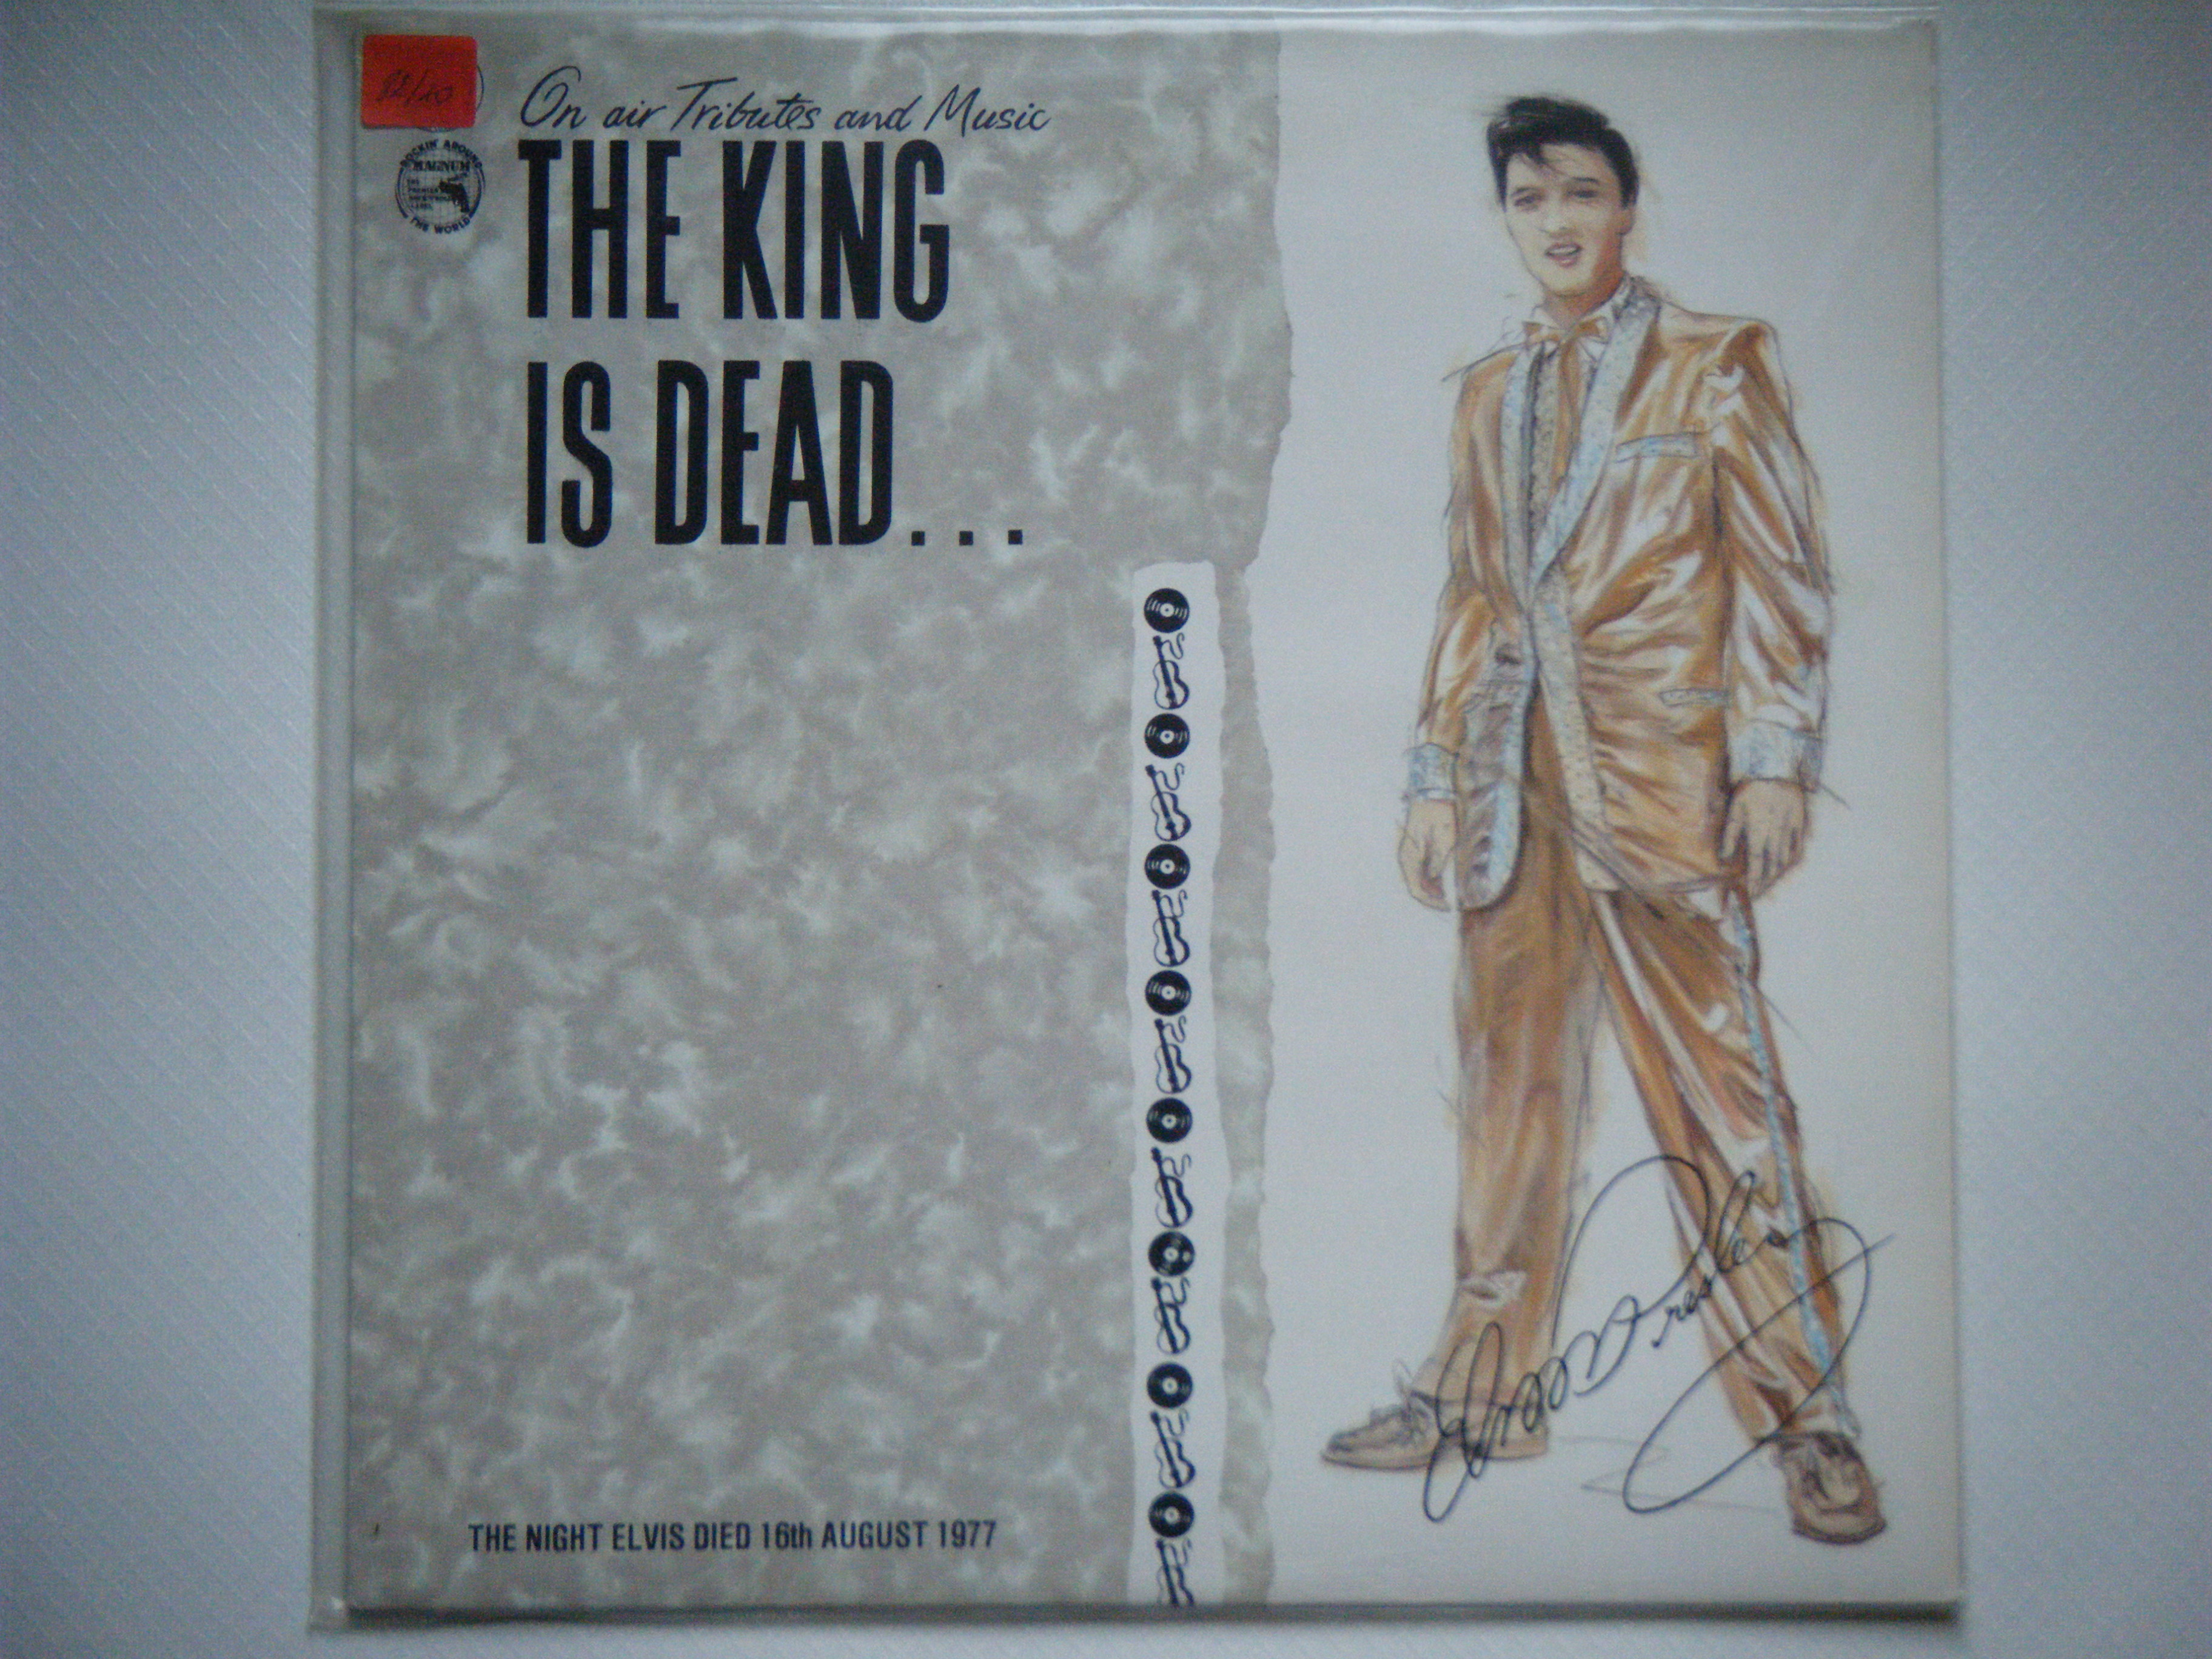 33t elvis the king is dead on air tributes and music - Bac a vinyl ...